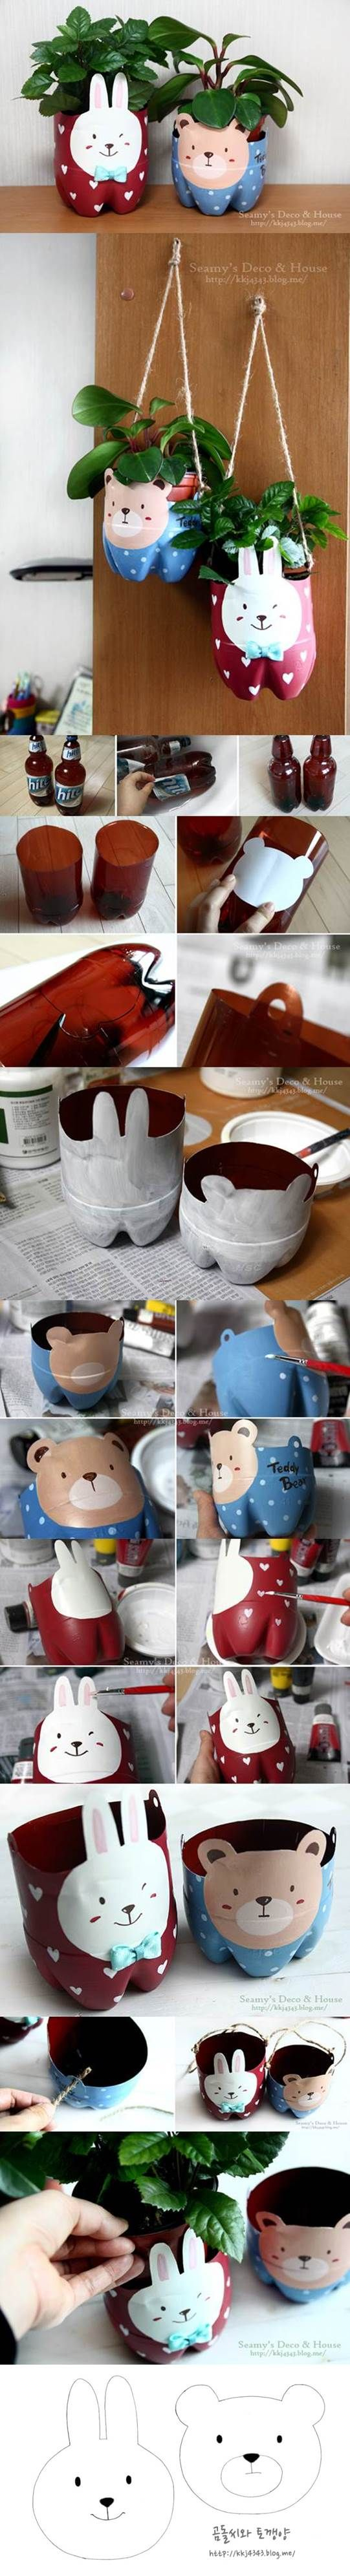 Květináče z PETek           DIY Cute Plant Pots with Plastic Bottles | iCreativeIdeas.com LIKE Us on Facebook ==> https://www.facebook.com/icreativeideas